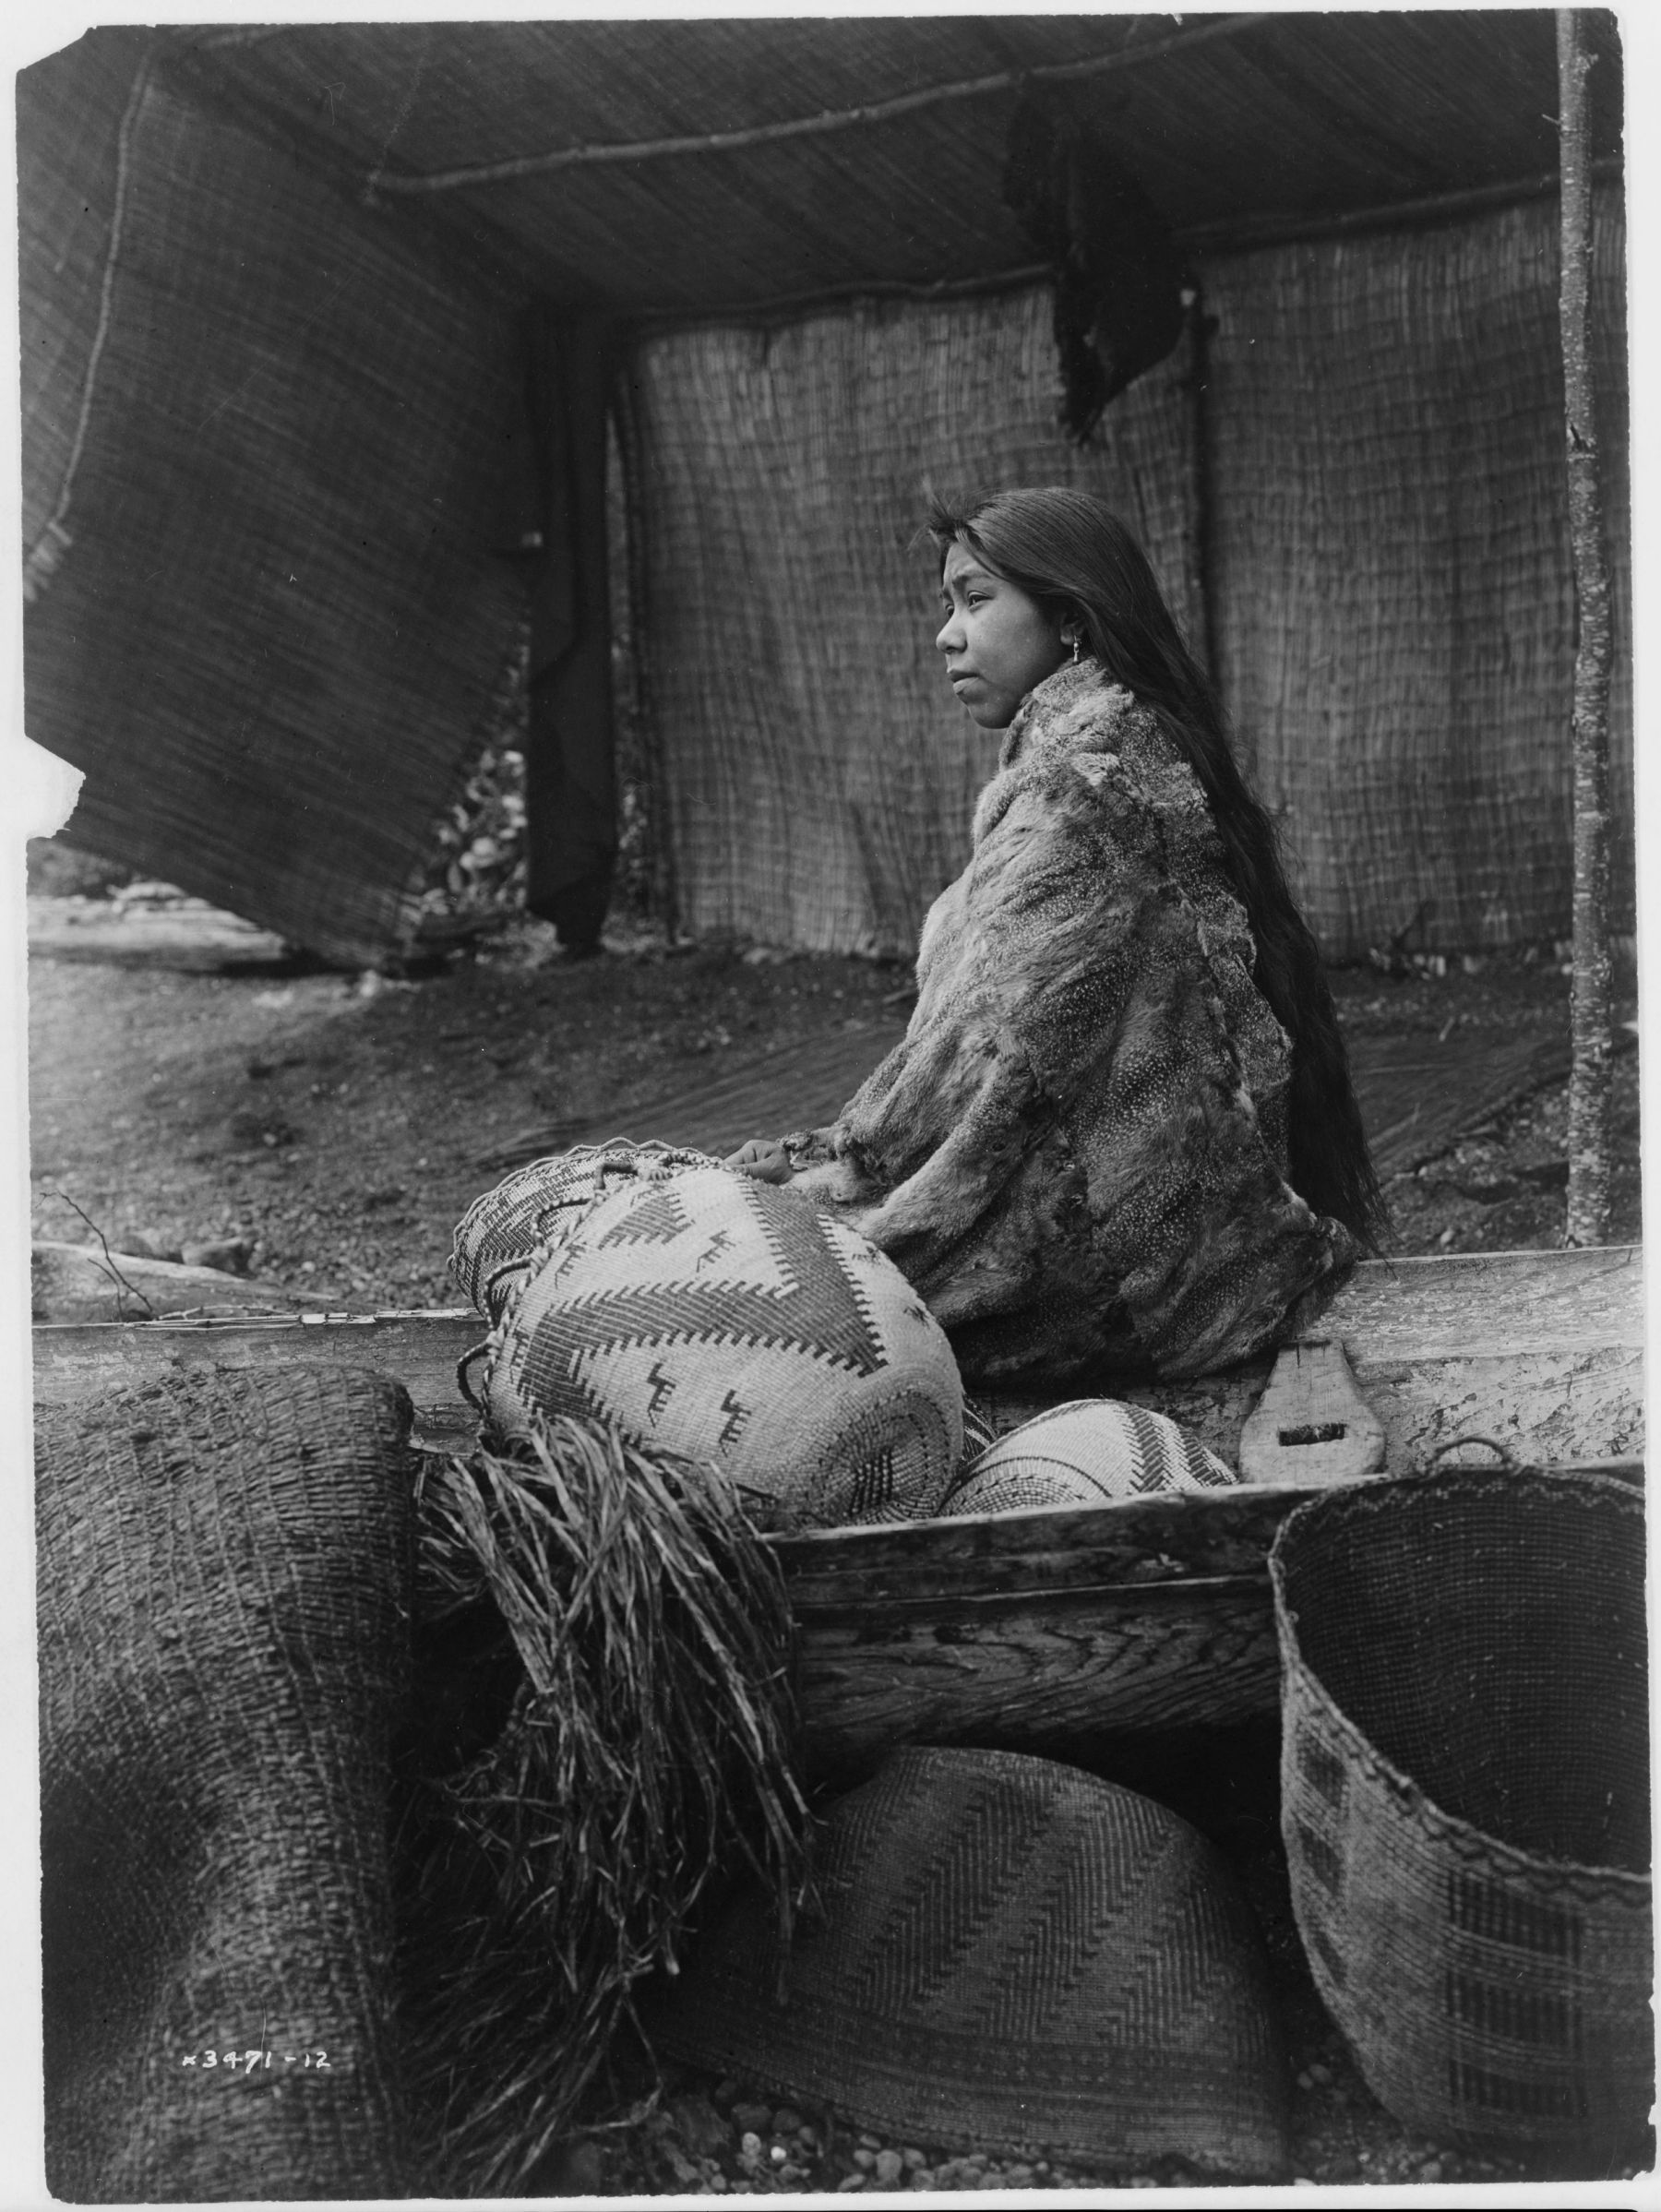 +~+~ Antique Photograph ~+~+  Skokomish Indian Chief's Daughter with baskets by Edward Sheriff Curtis.